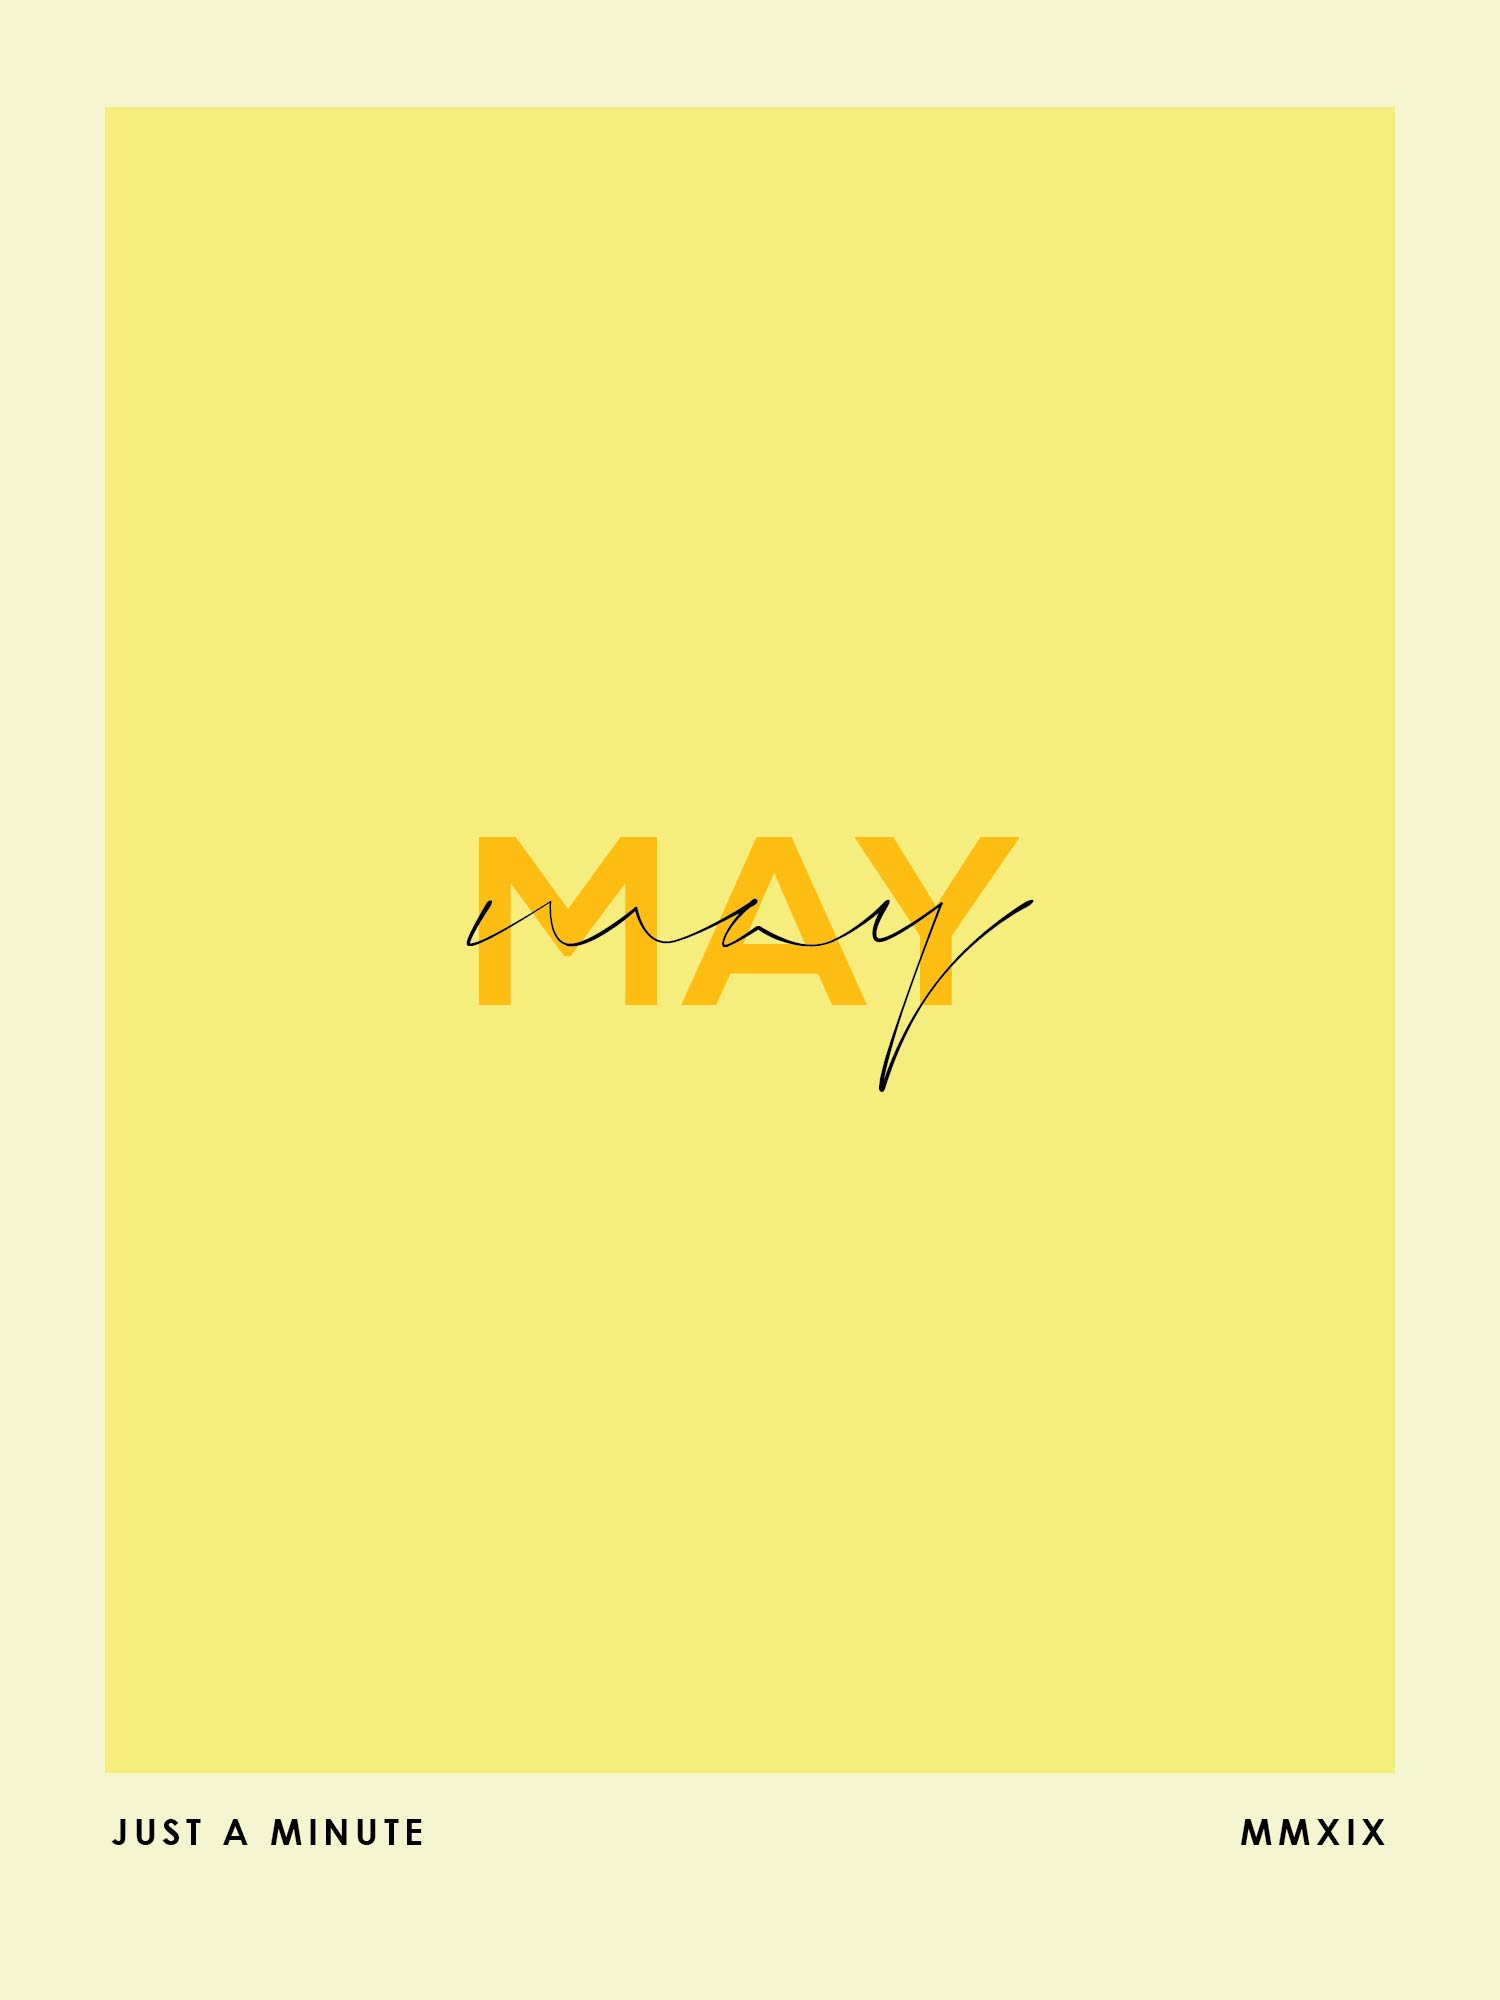 Just_A_Minute_In_May_2019_Ruo_Ling_Lu